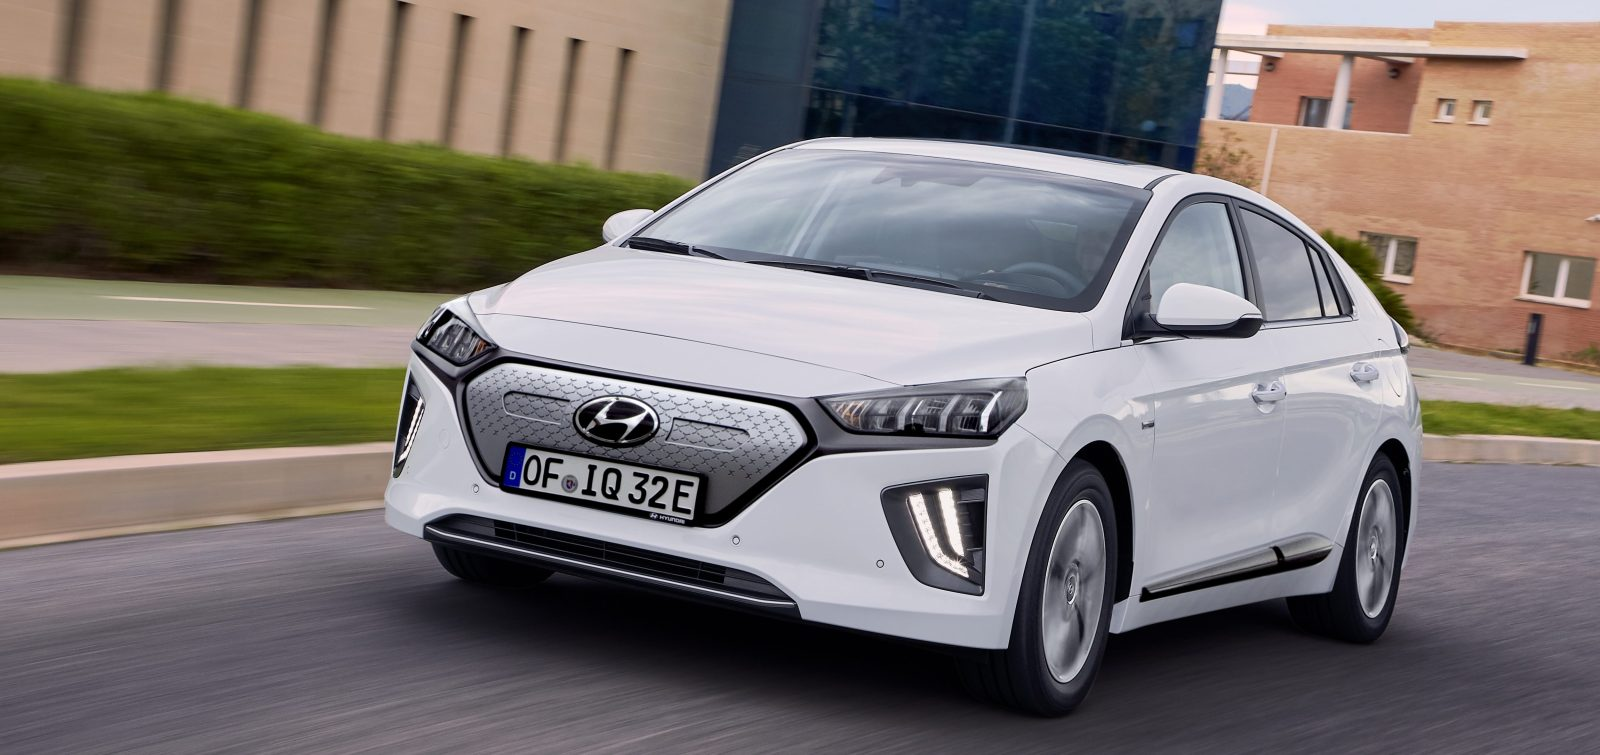 Hyundai Ioniq 2021 Price in Pakistan Specs, Features